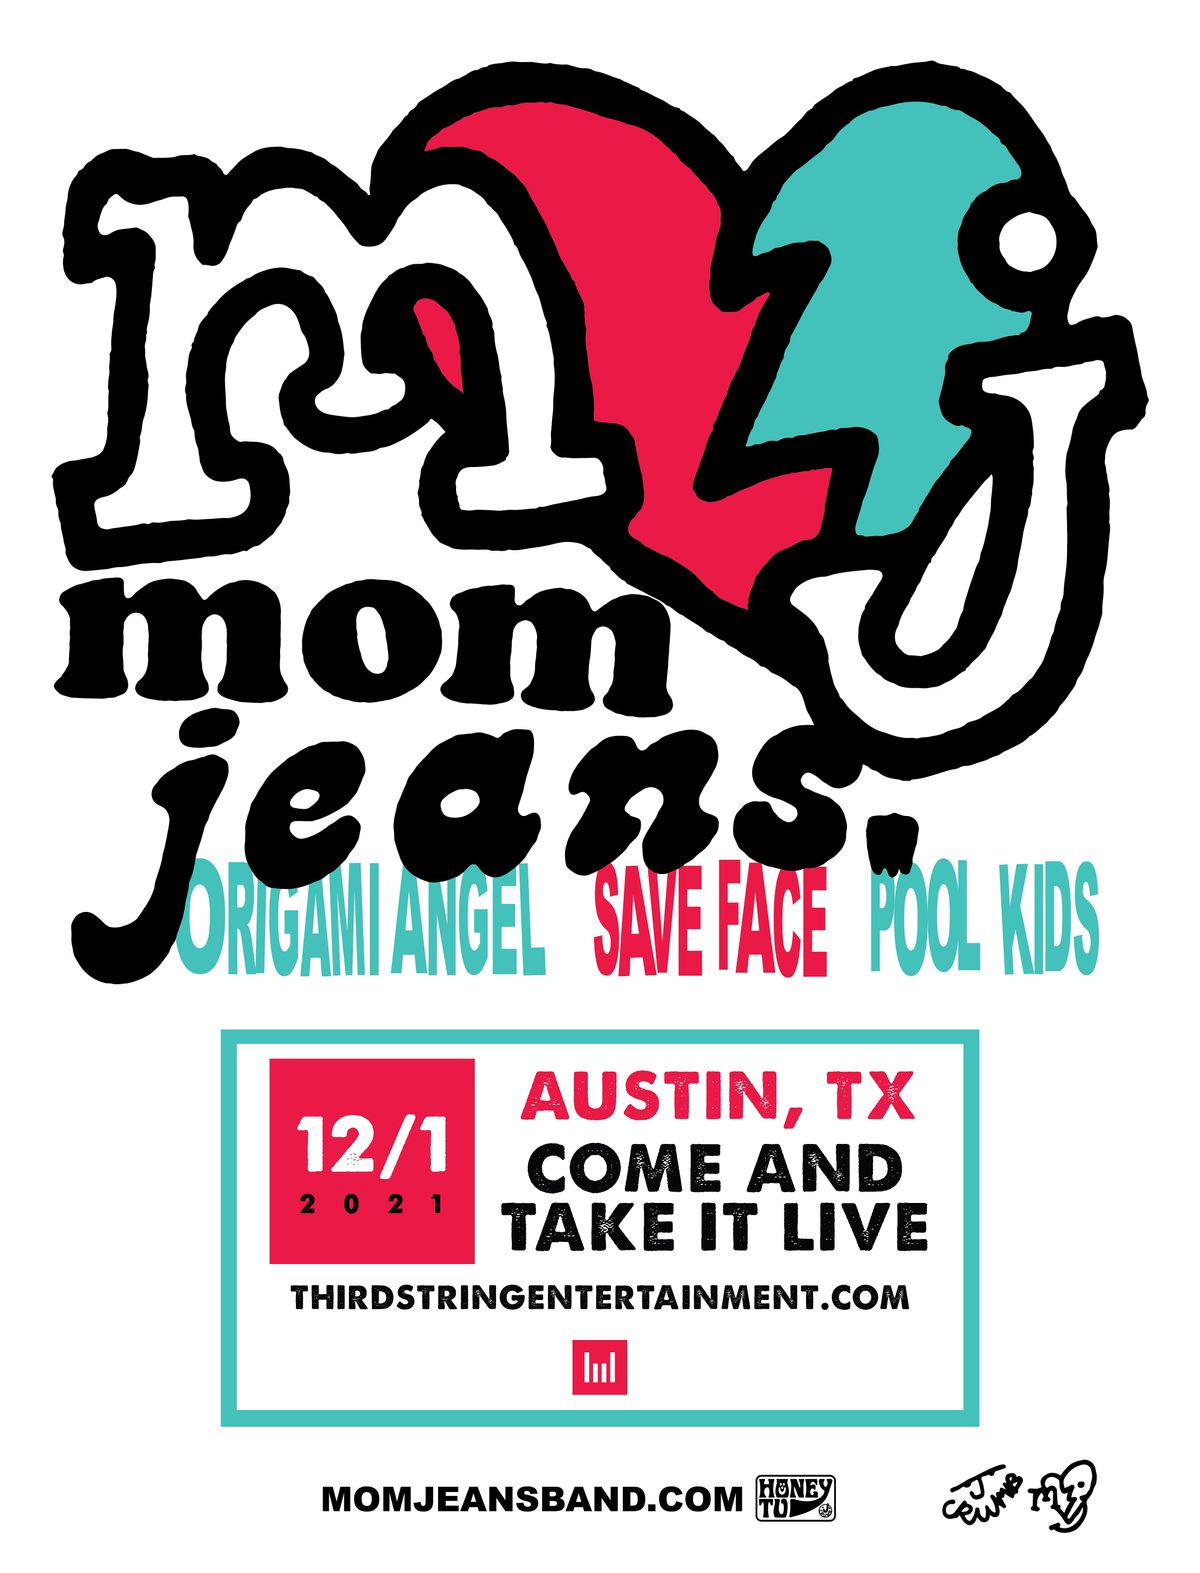 MOM JEANS.